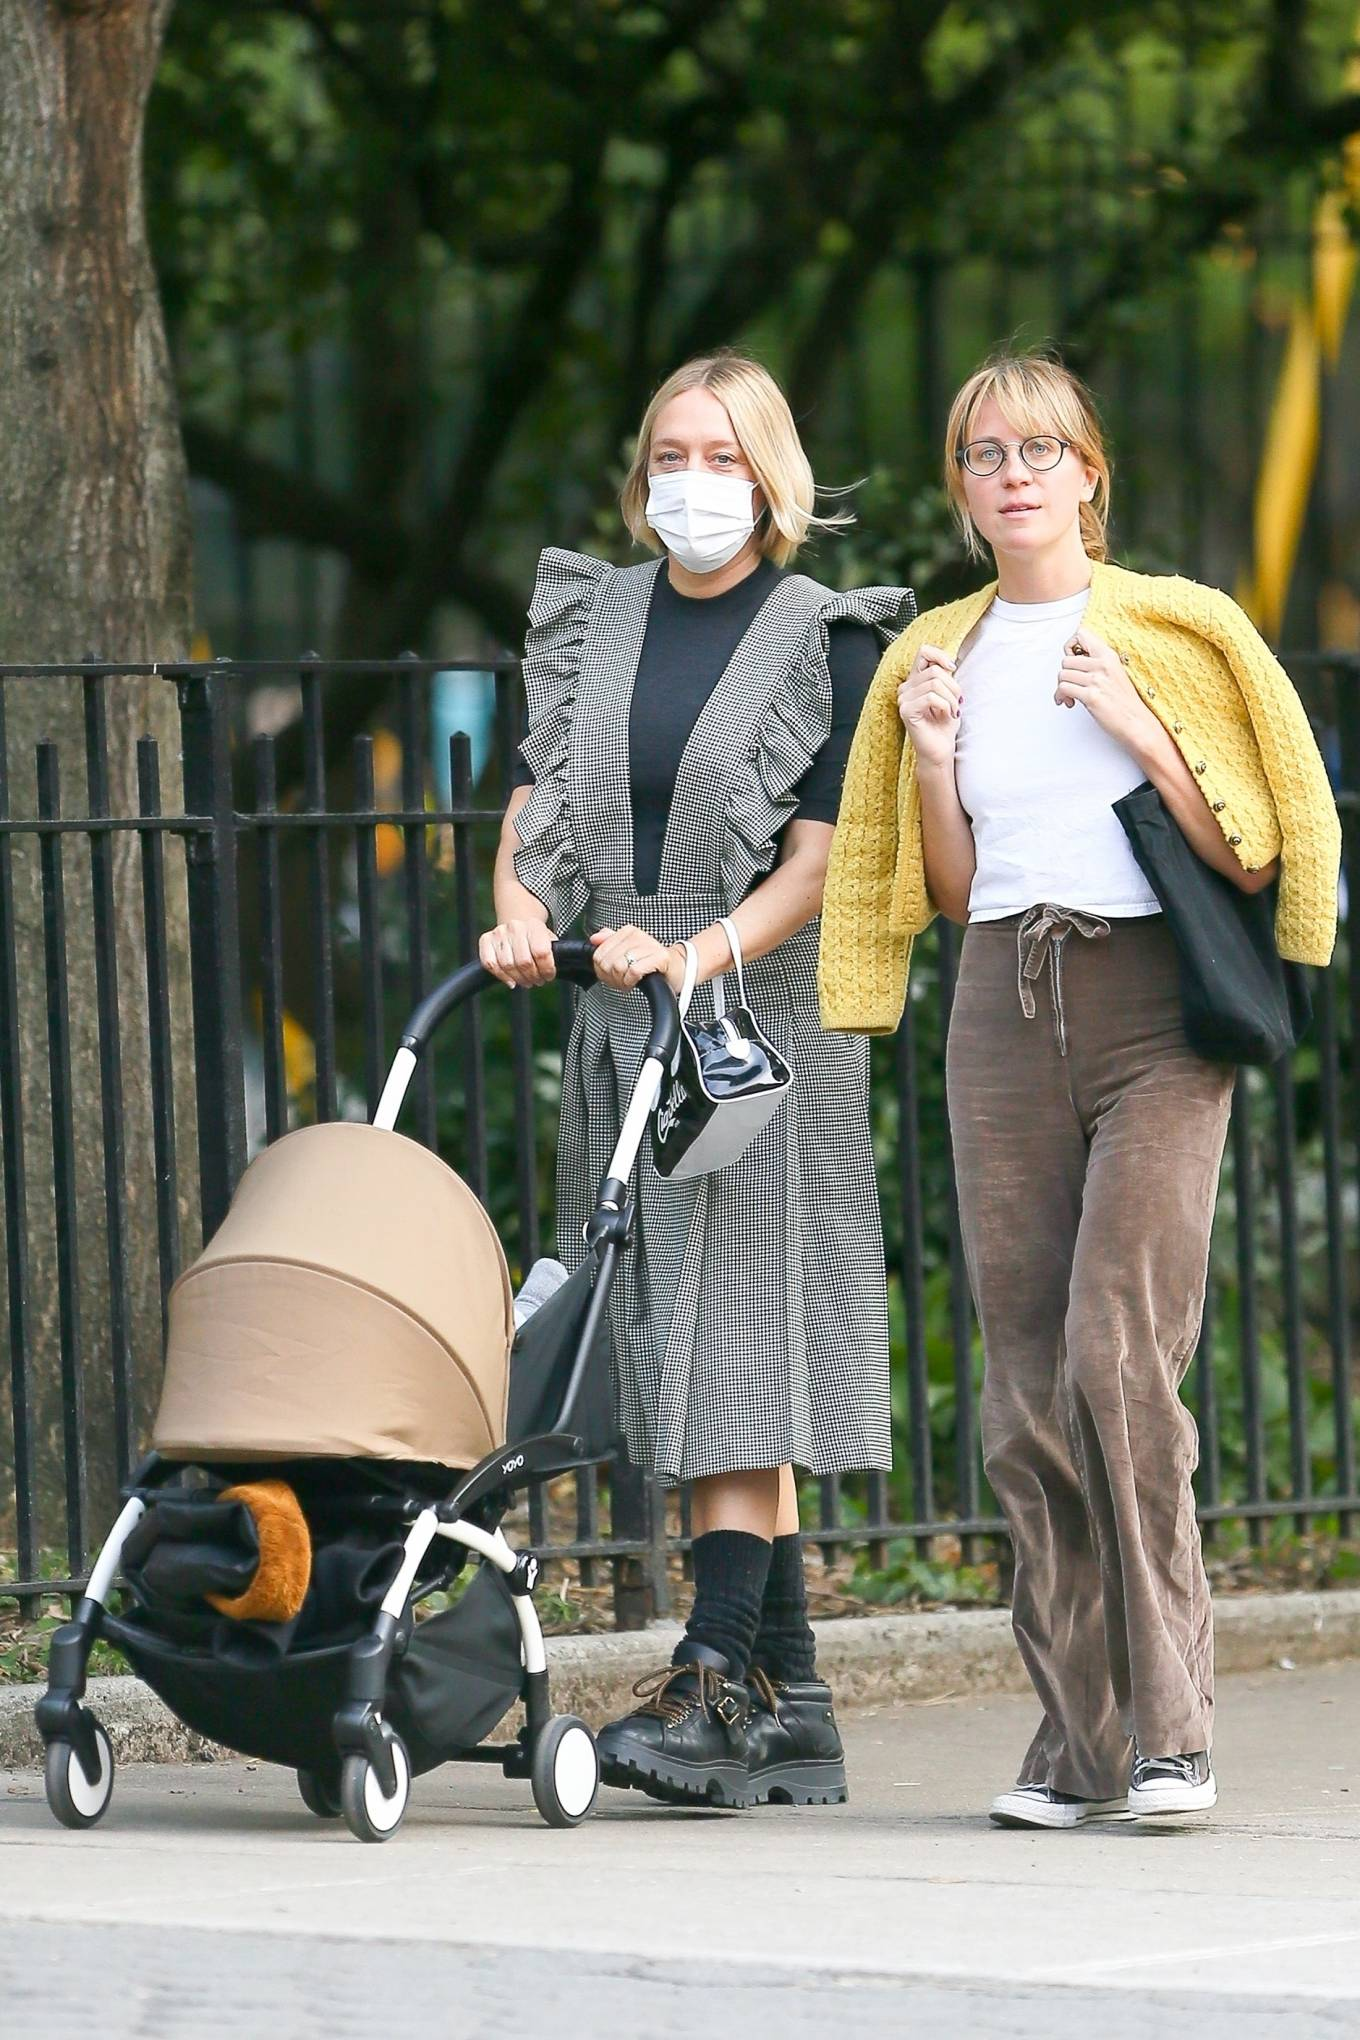 Chloe Sevigny 2020 : Chloe Sevigny – Out for a walk with her baby and a friend in New York-01